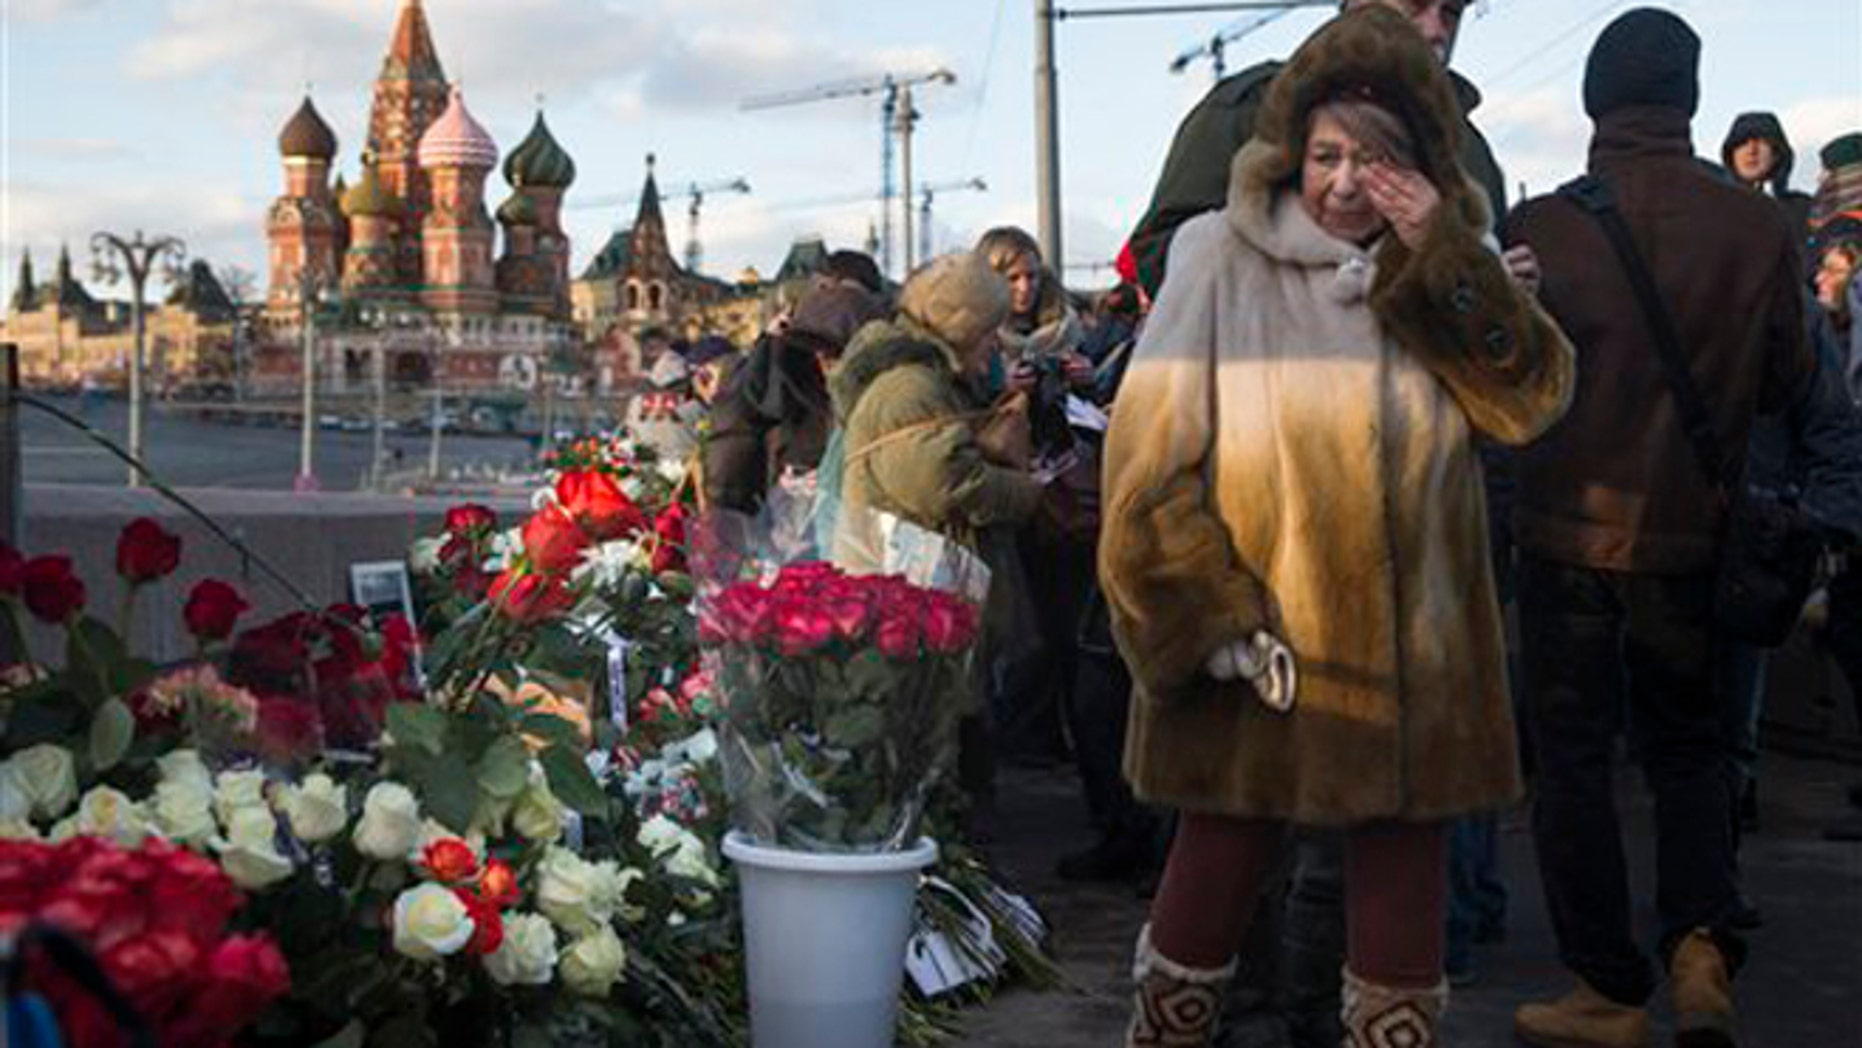 People lay flowers at the place where Russian opposition leader Boris Nemtsov was gunned down a year ago, marking the anniversary of his killing, in Moscow, with St. Basil Cathedral in the background, Russia, Saturday, Feb. 27, 2016. (AP Photo/Pavel Golovkin)